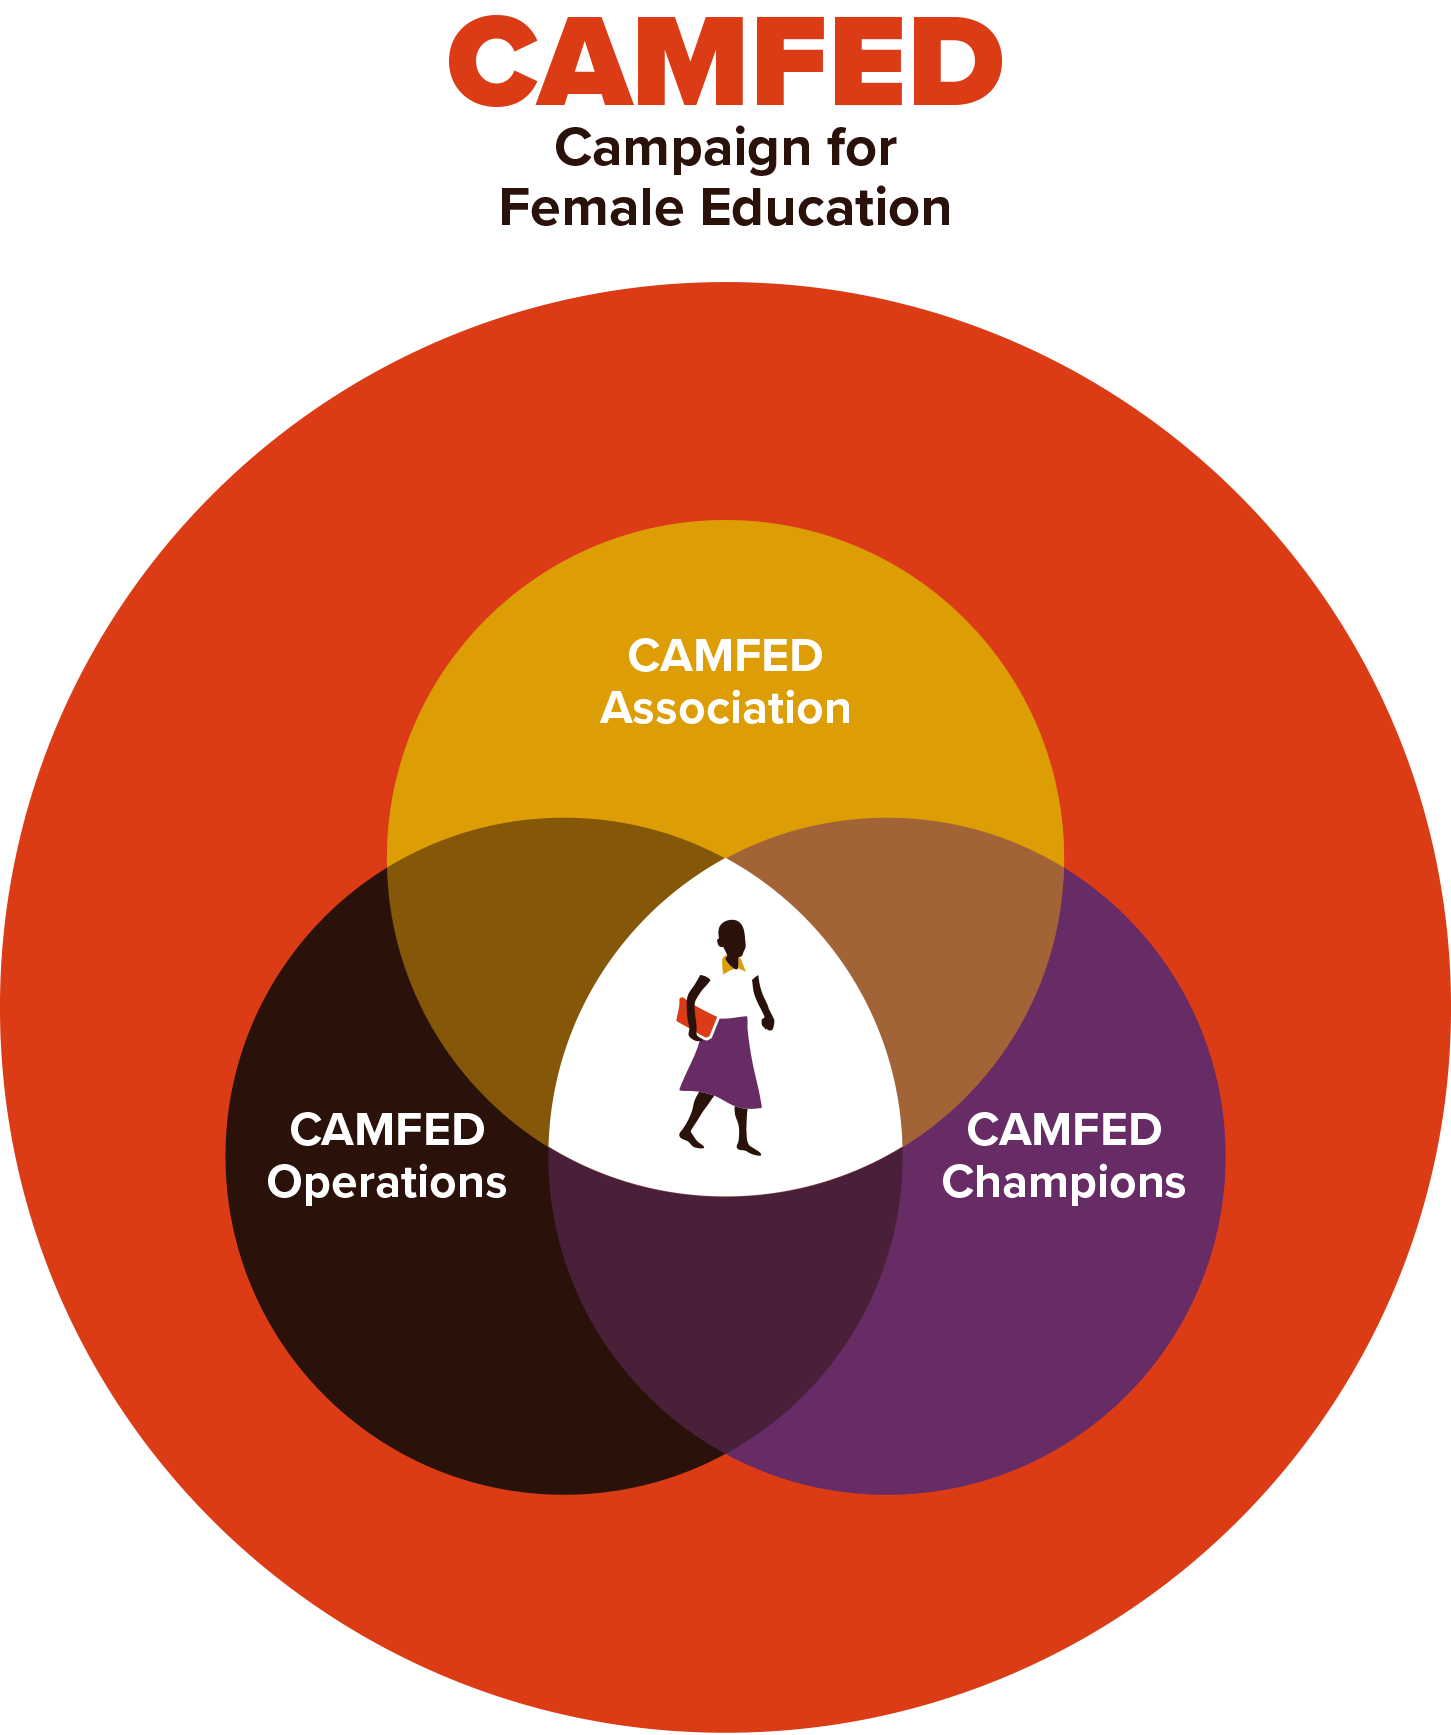 CAMFED operating model diagram